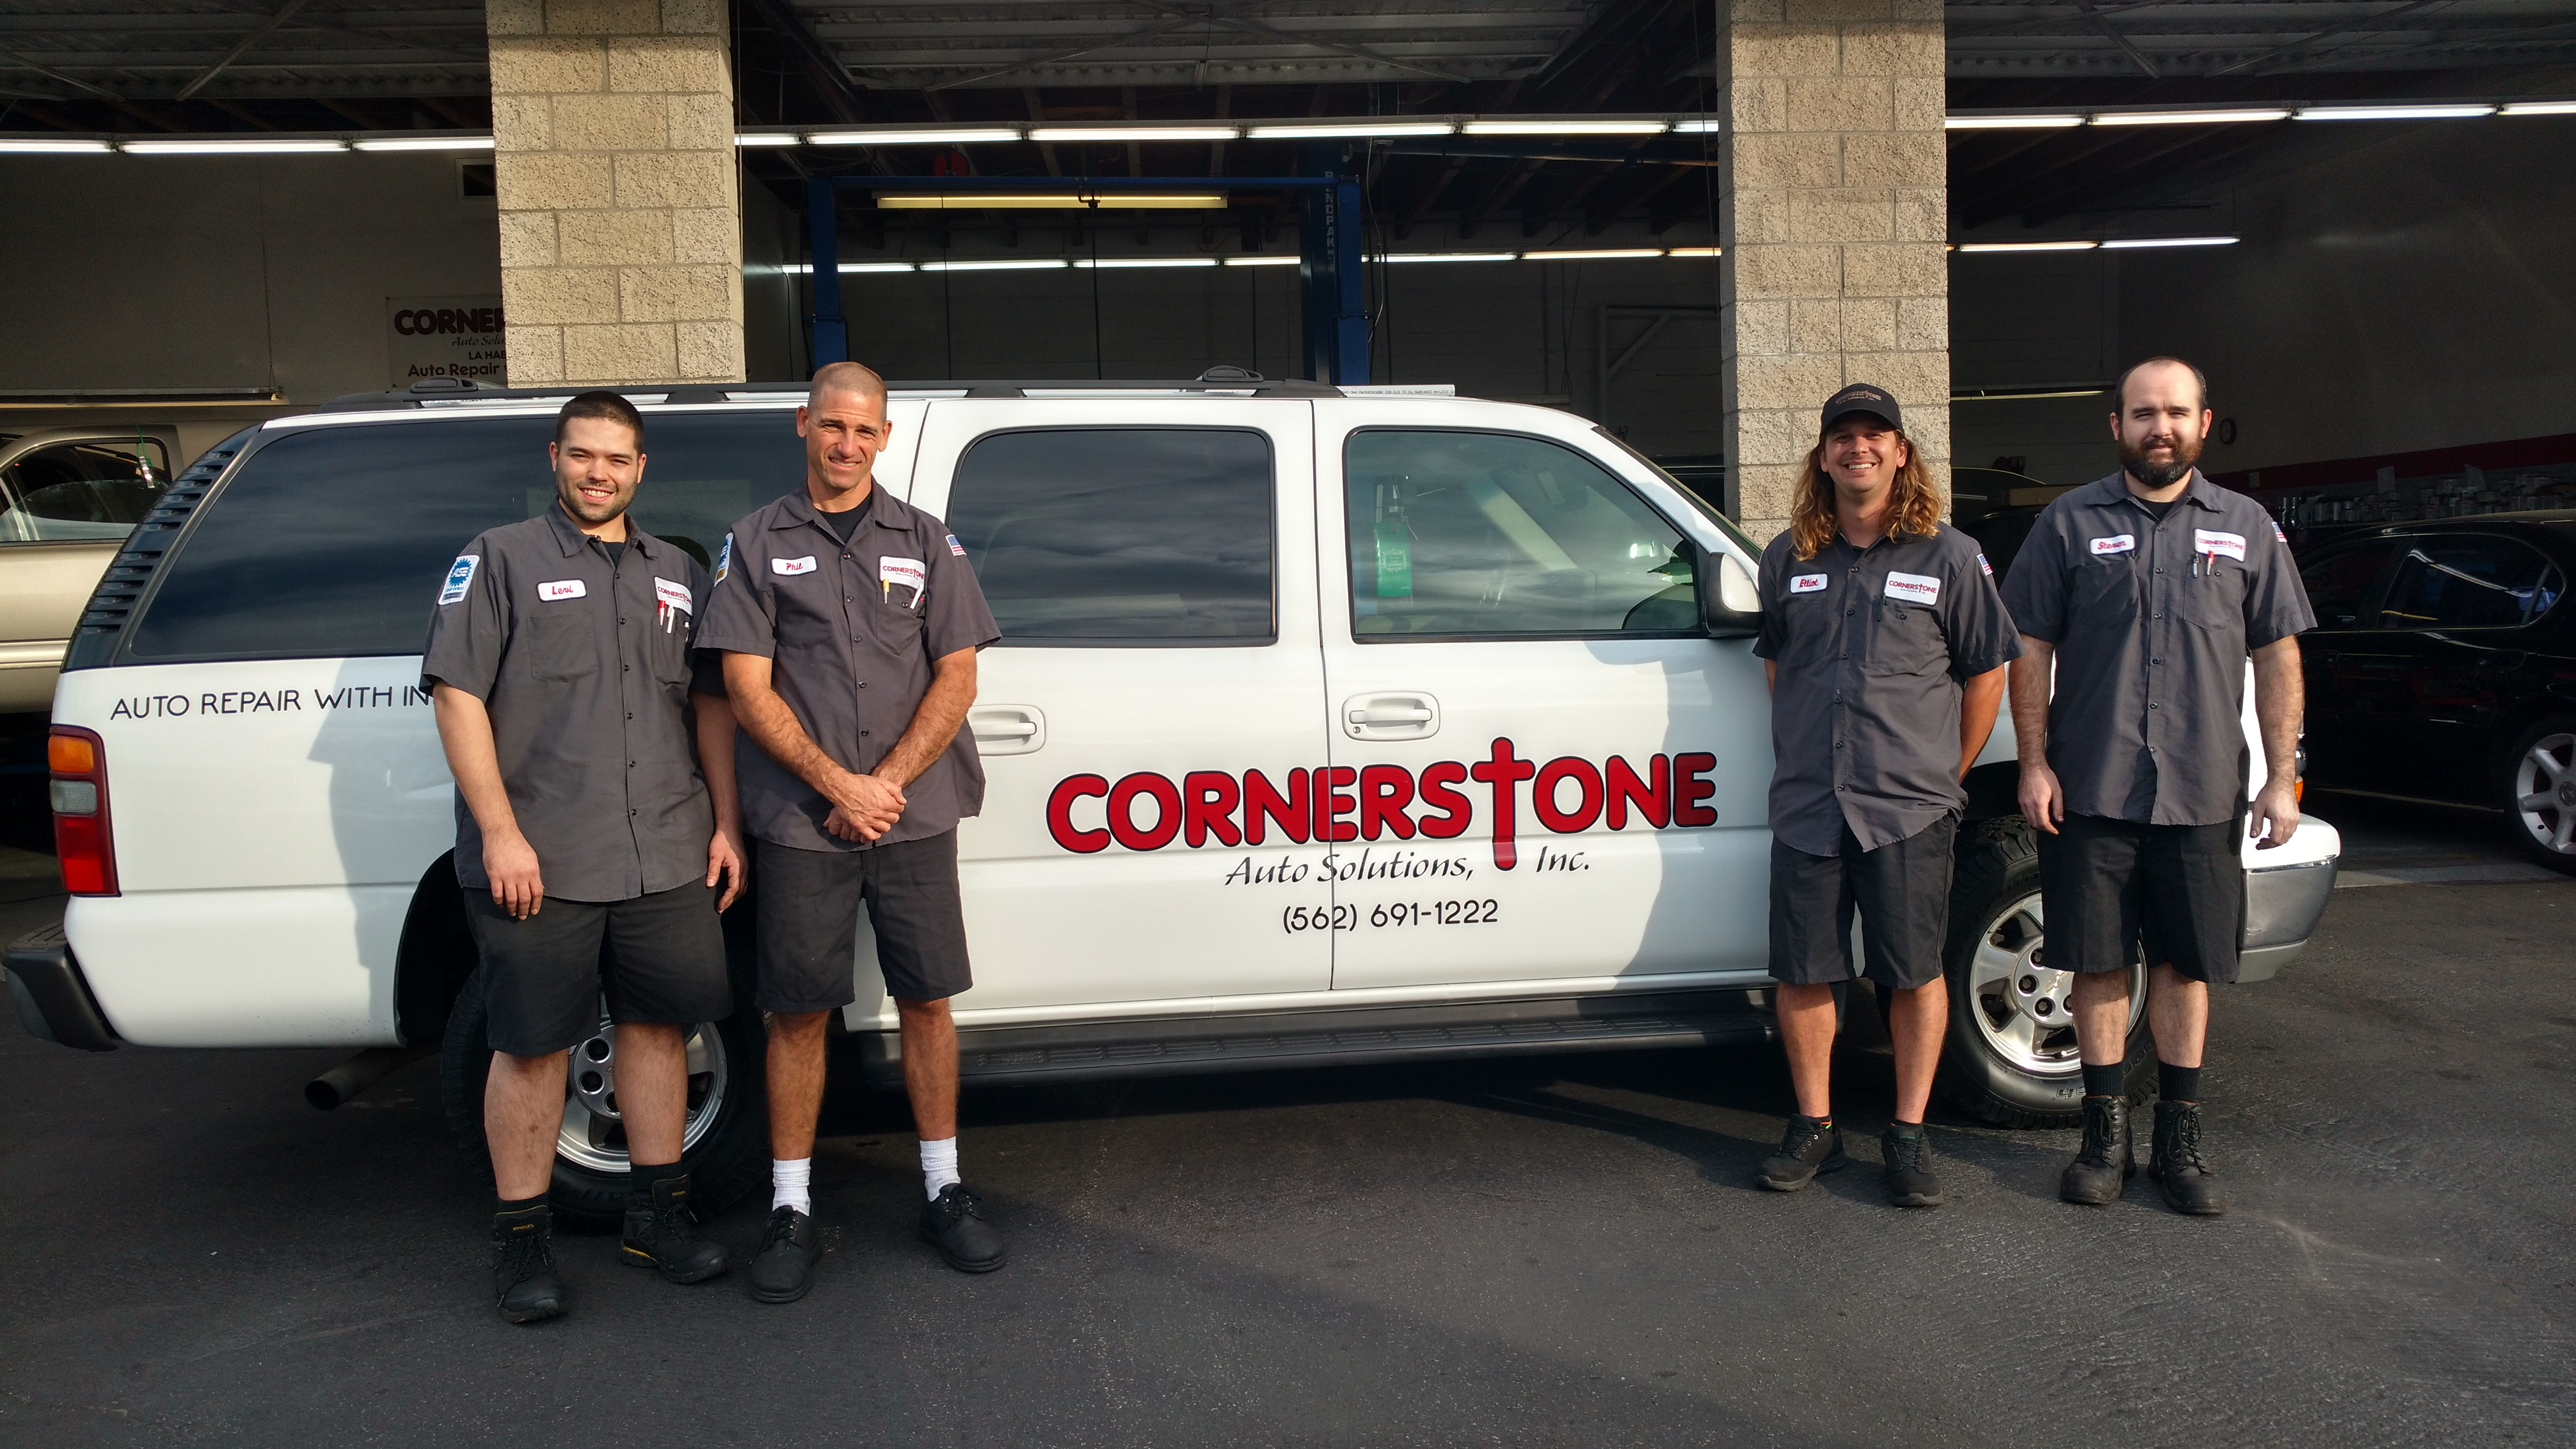 Cornerstone Auto Solutions Auto Repair With Integrity